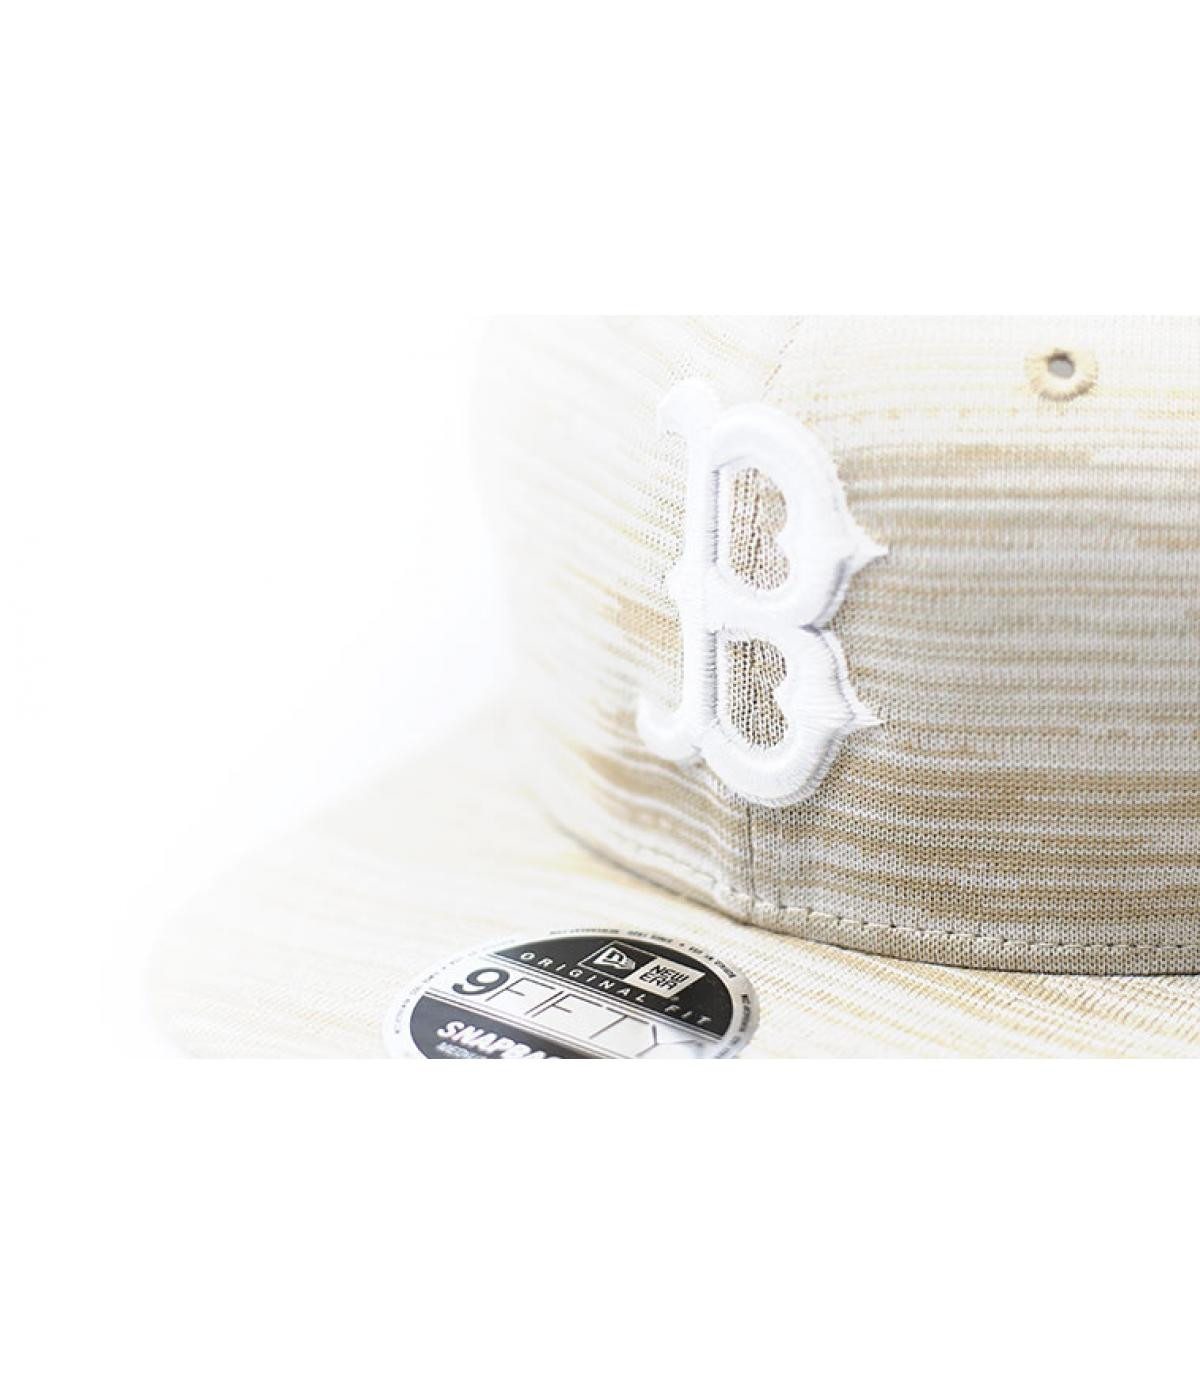 Détails Snapback Engineered Fit 9Fifty Boston stone white - image 3